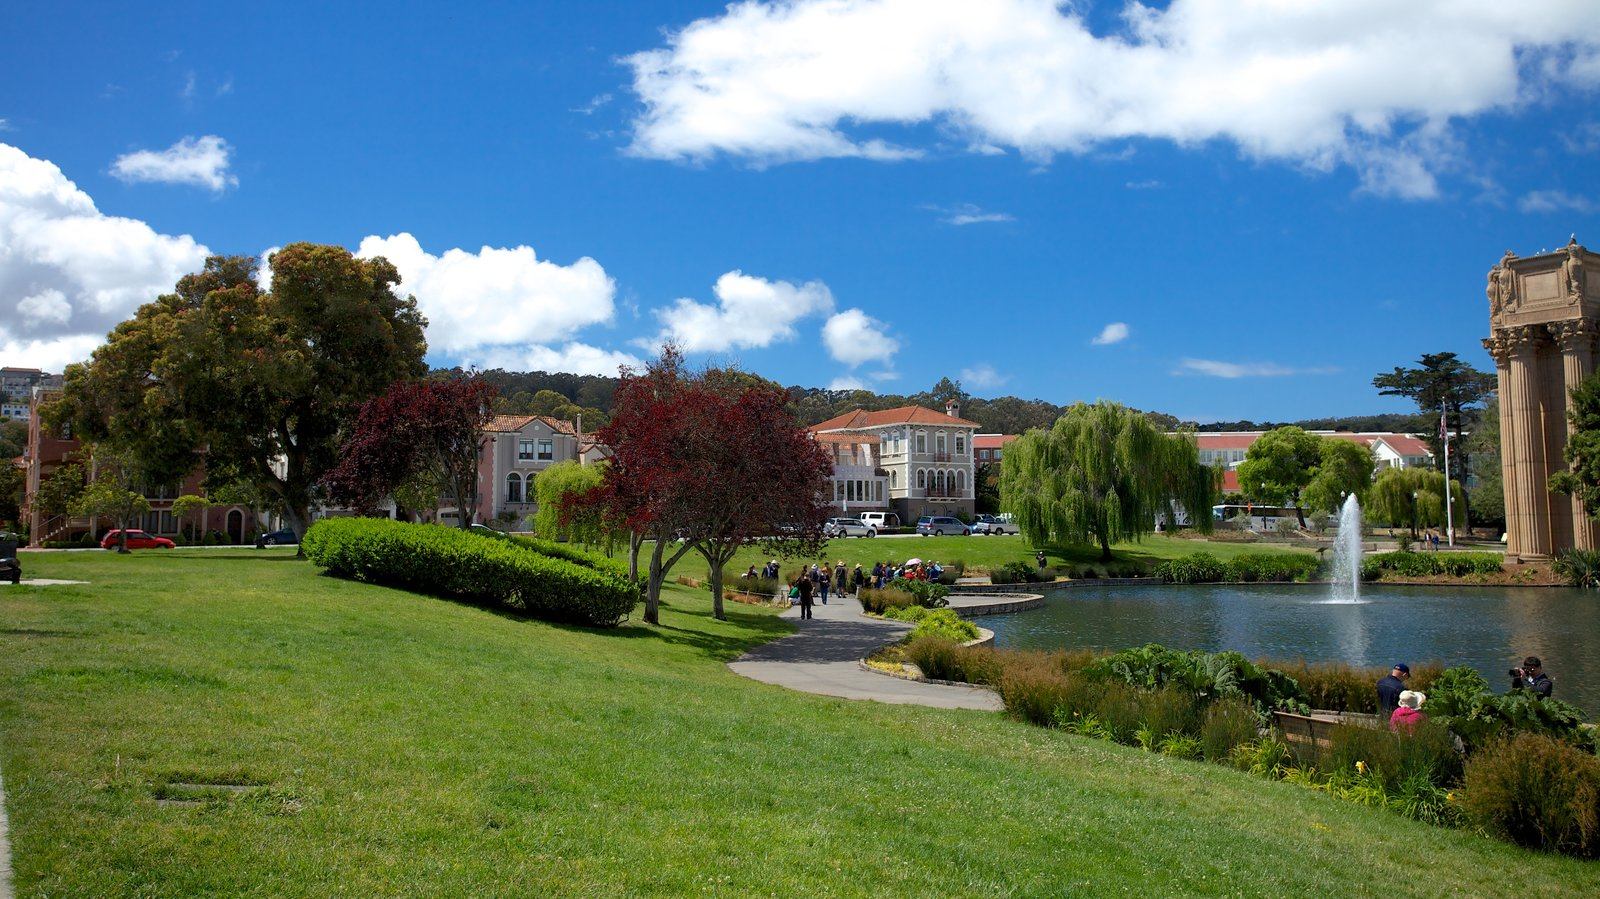 Palace of Fine Arts featuring a garden, a lake or waterhole and a fountain